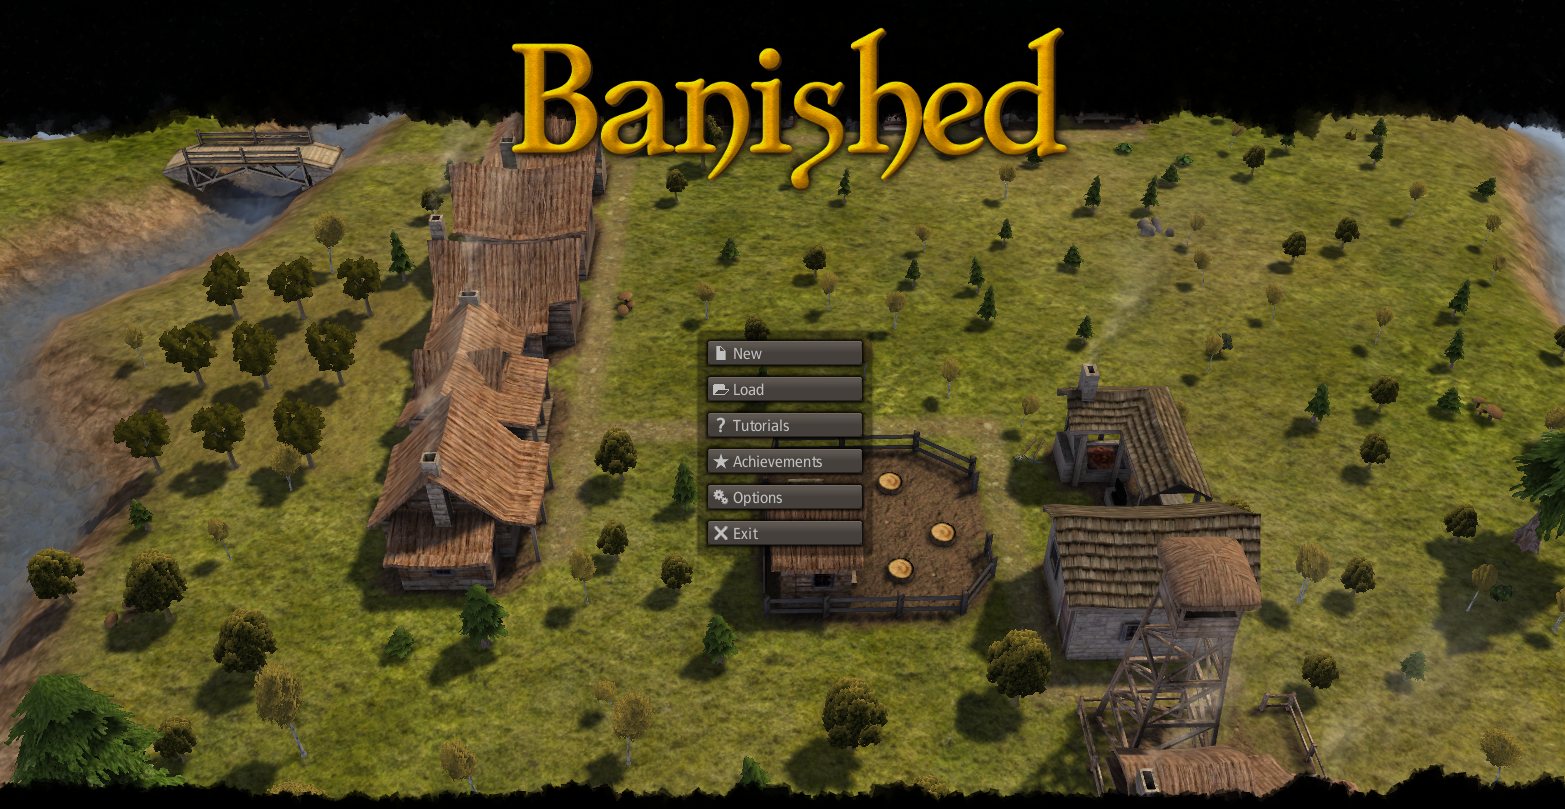 BANISHED / JEU VIDEO / JEU DE GESTION ET DE CIVILISATION